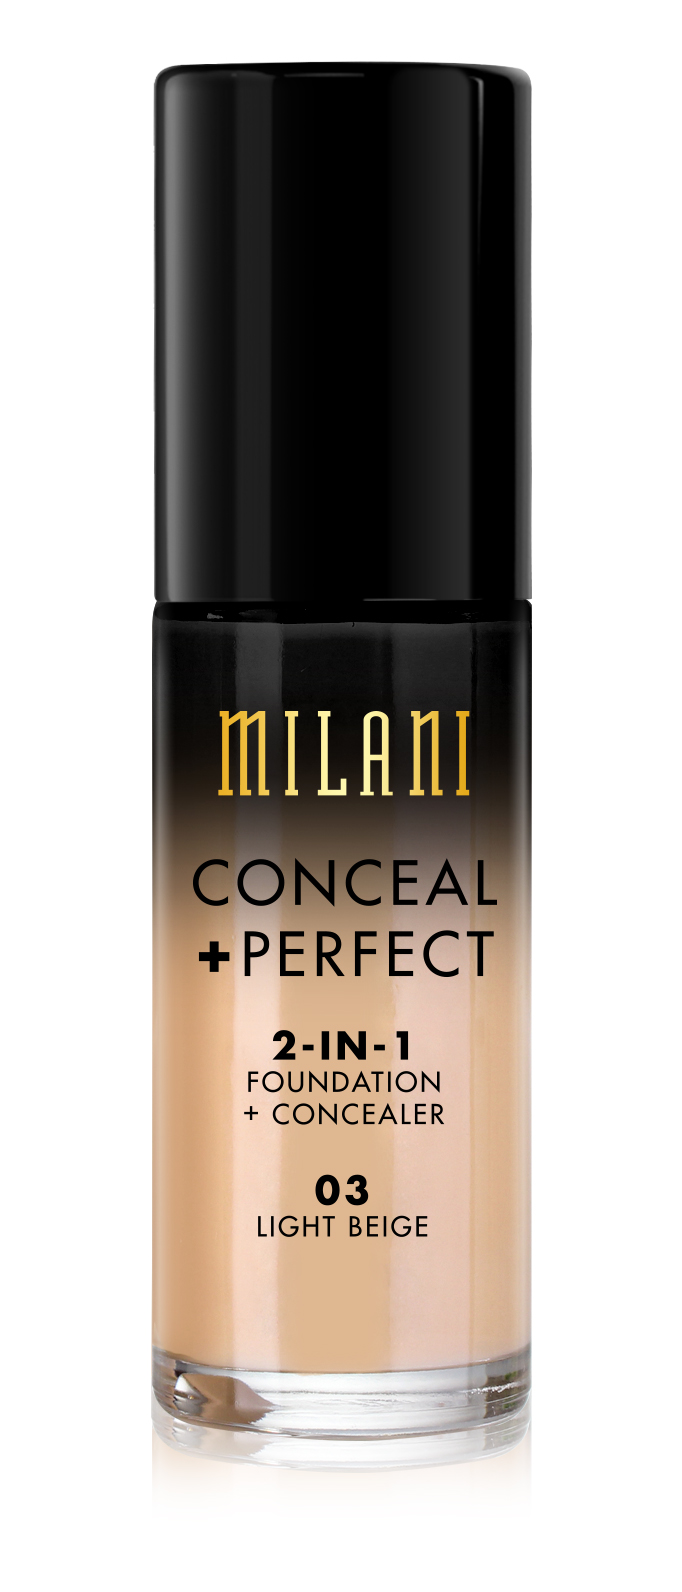 milani conceal + perfect, best beauty products at target